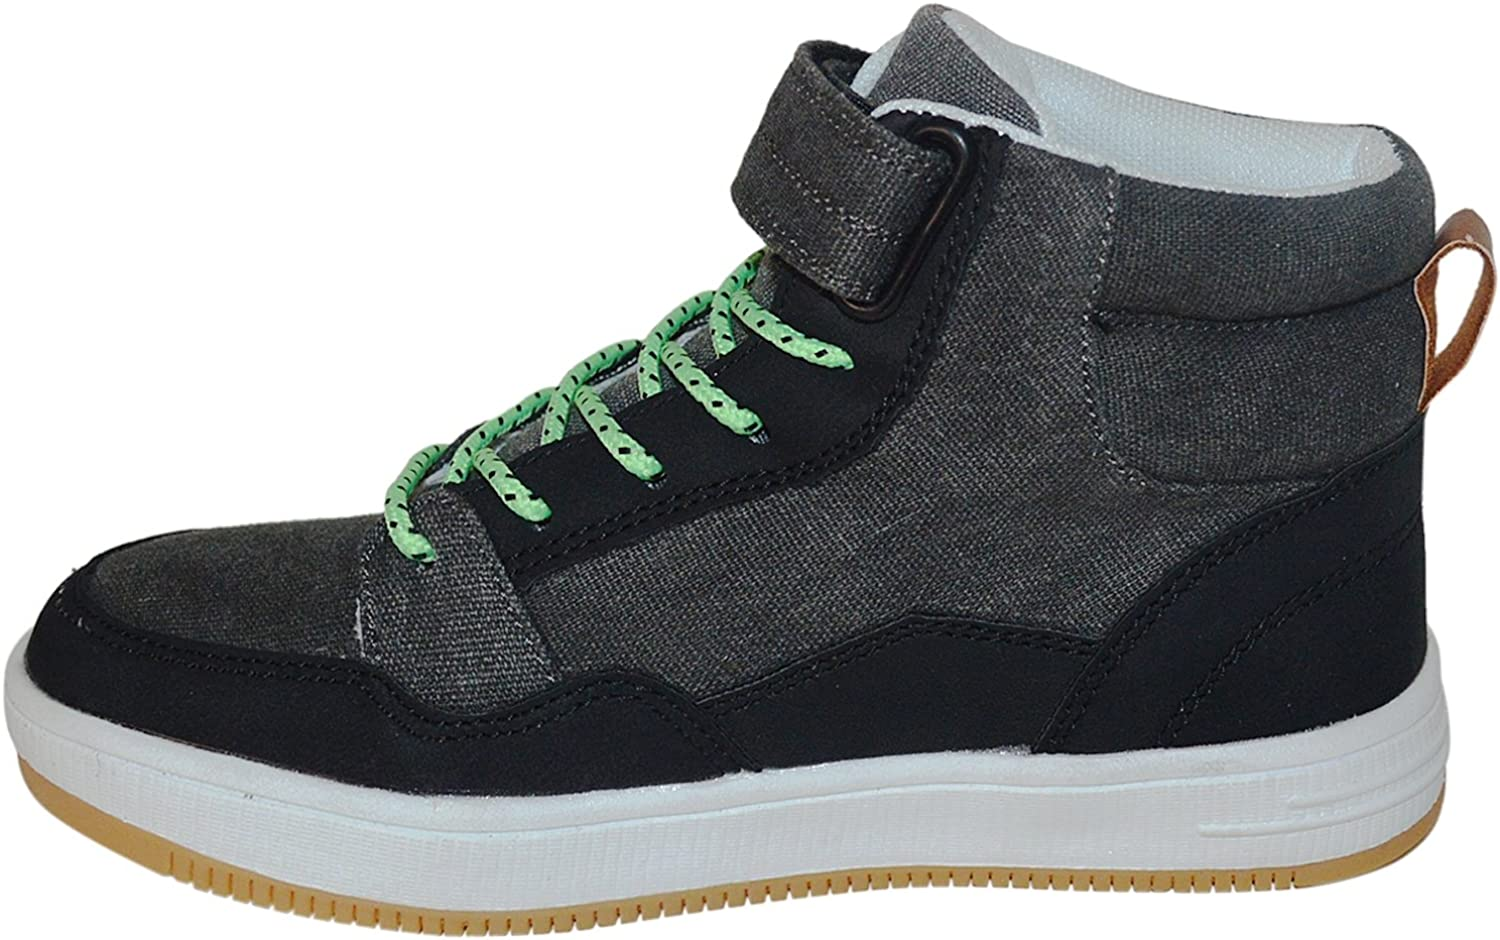 BUM Equipment Kids Stylish Contrast Lace and High Top Bum Shoes Black